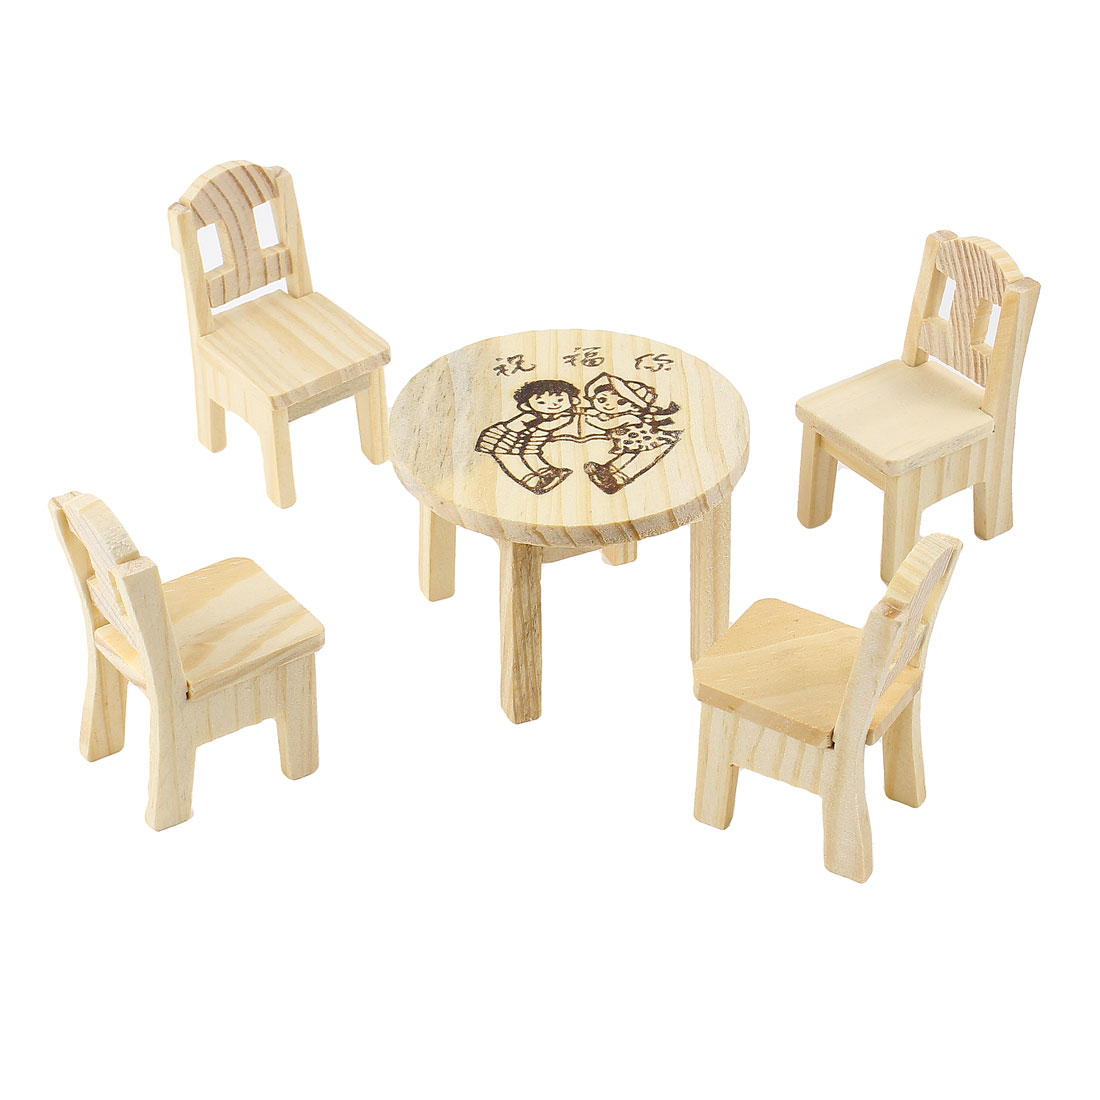 Blessing Words Printed Wooded Craft Table Chair Decor Set 5 in 1